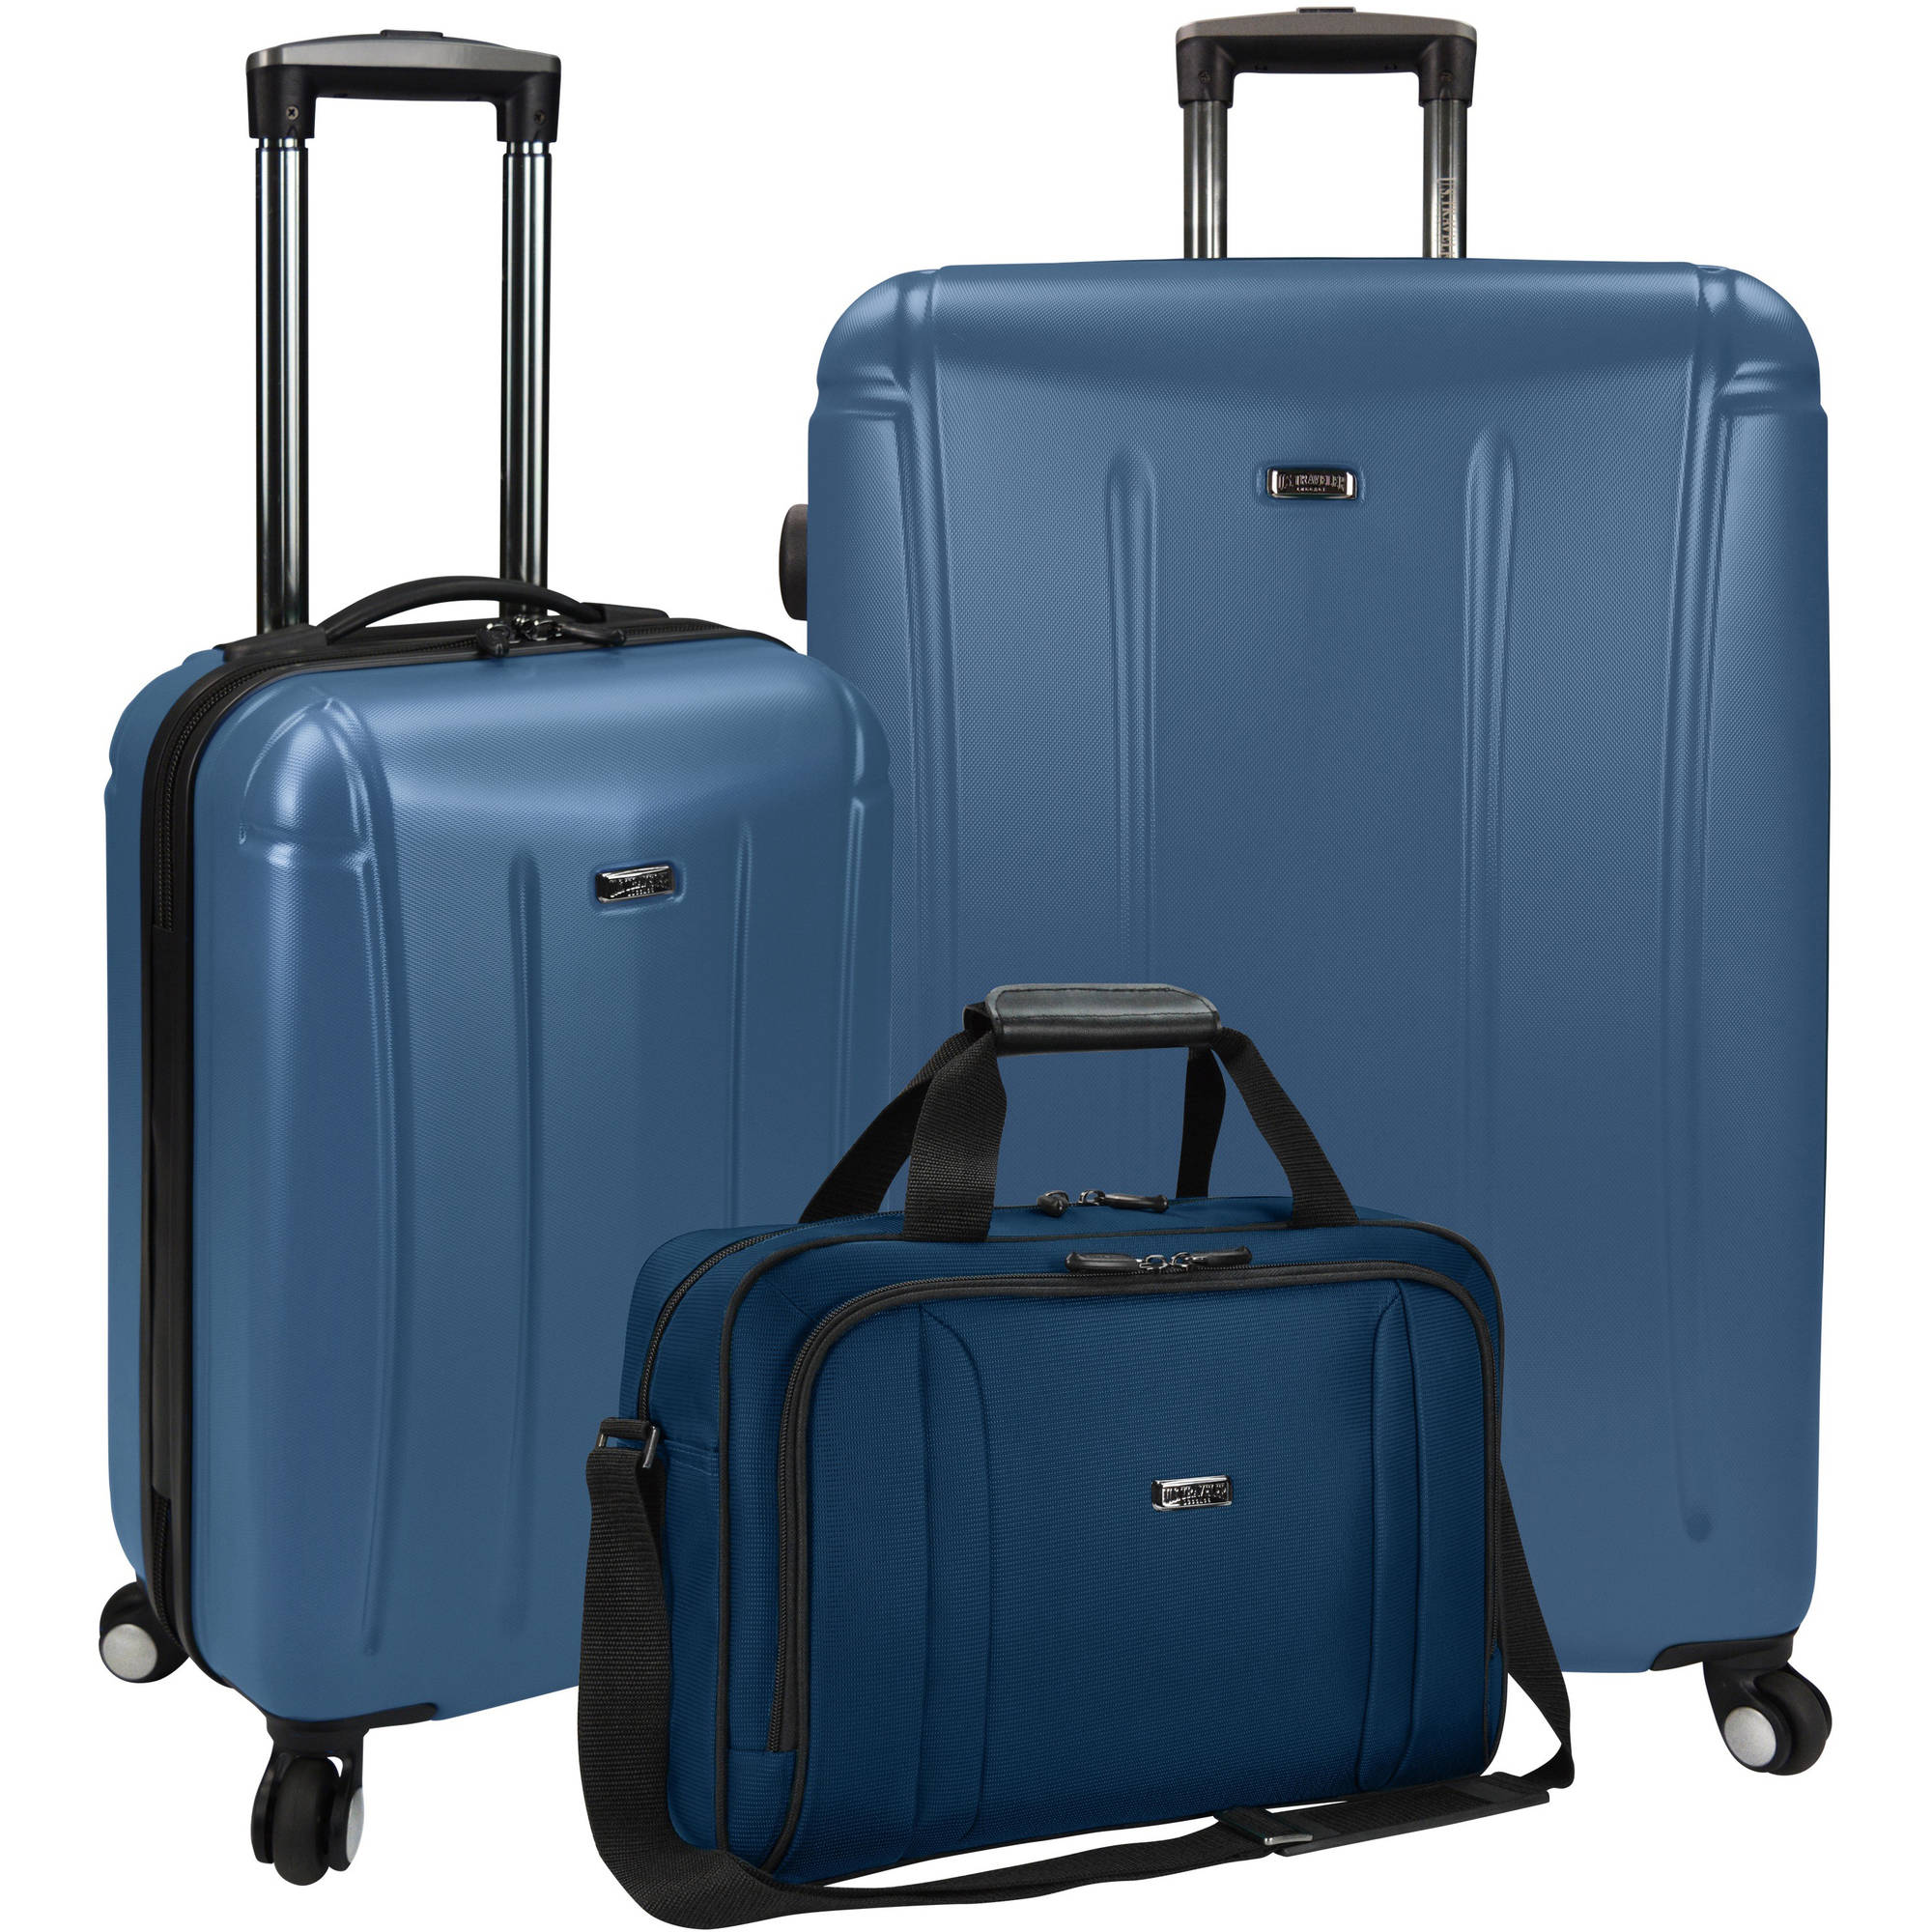 U.S. Traveler Hytop 3-Piece Spinner Luggage Set